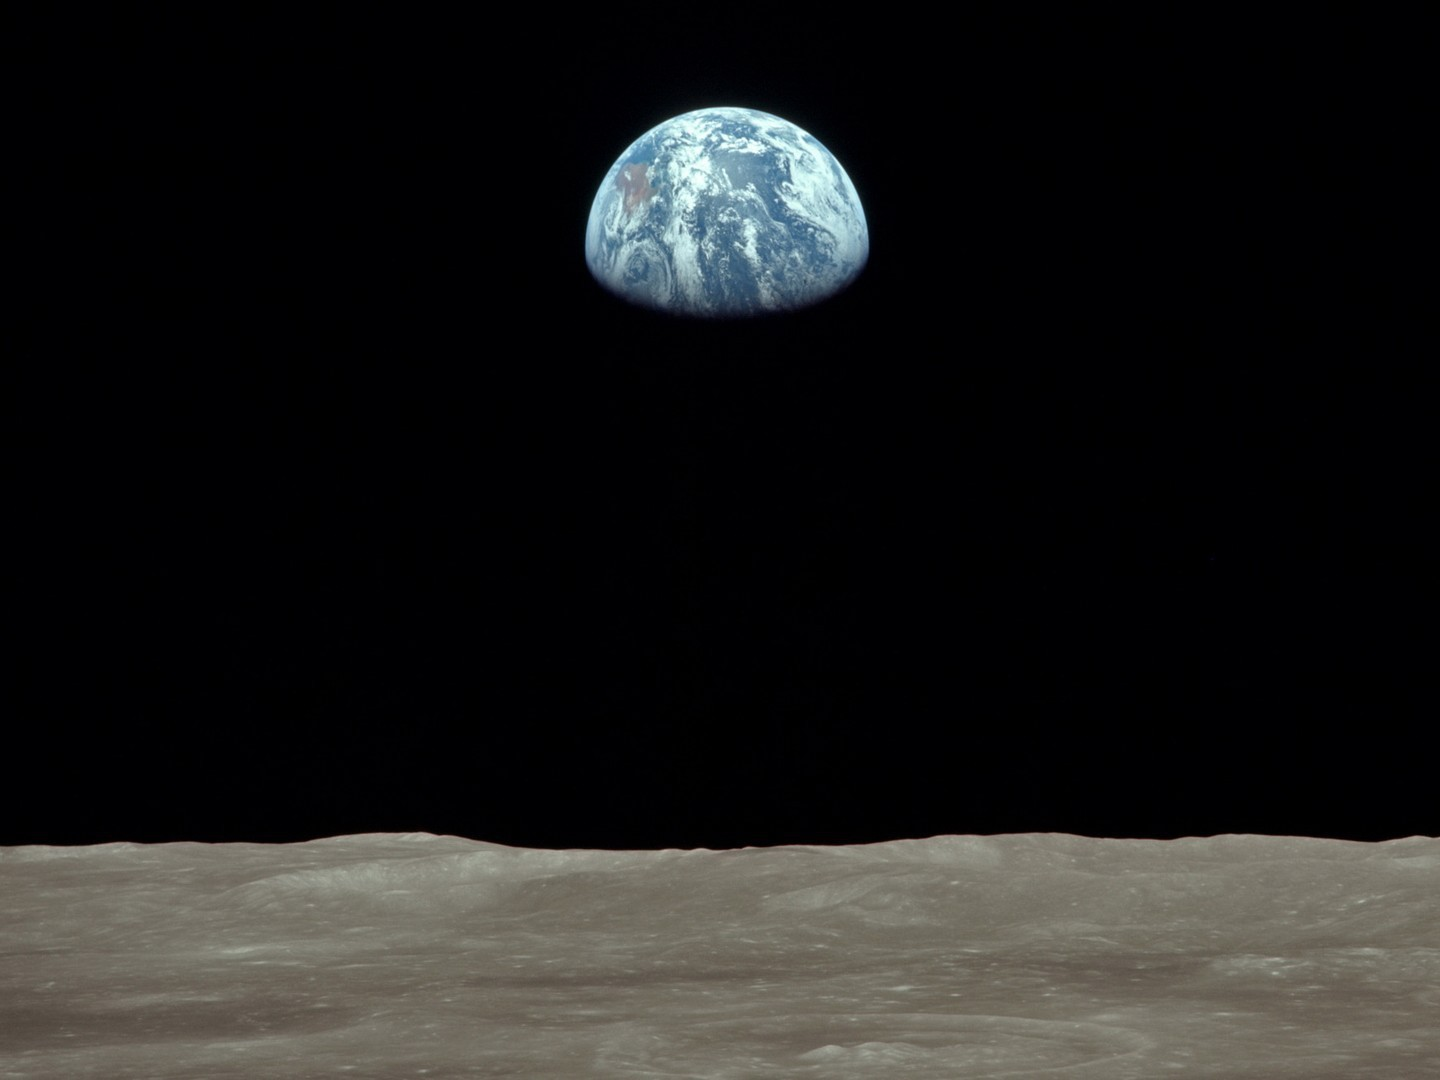 The Best Iphone X Wallpapers Earth Moon Nasa Astronomy Earthrise Wallpaper